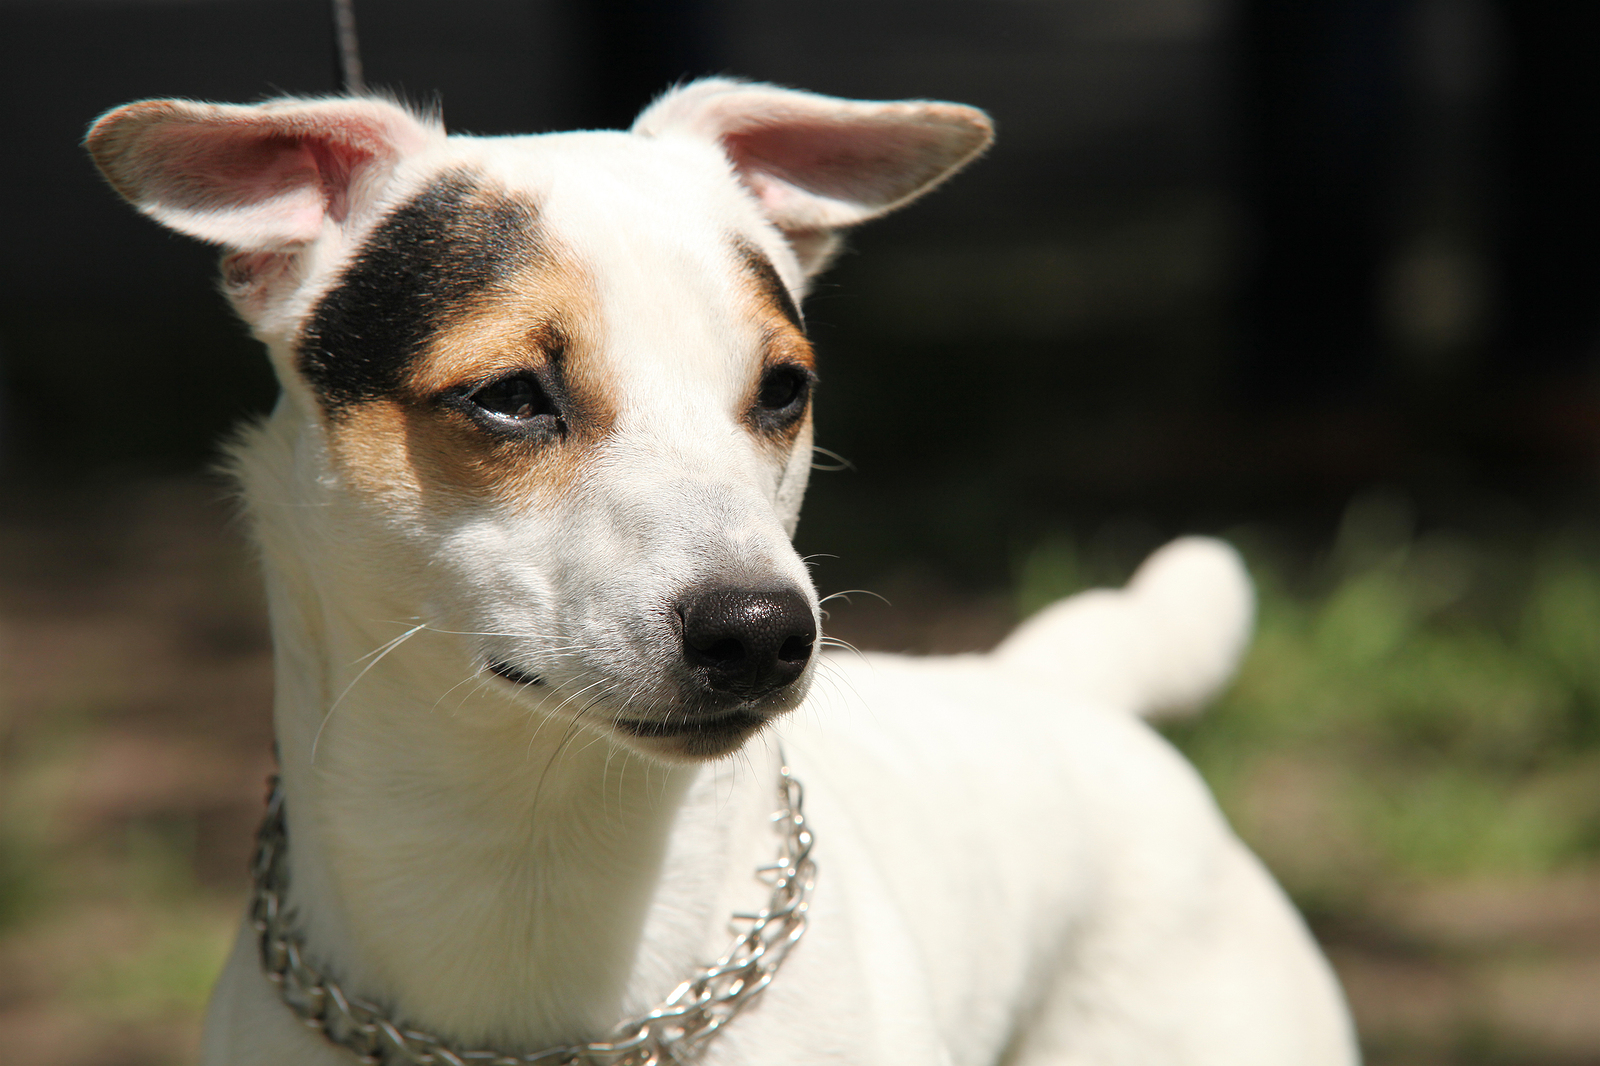 Jack russell terrier stopped eating